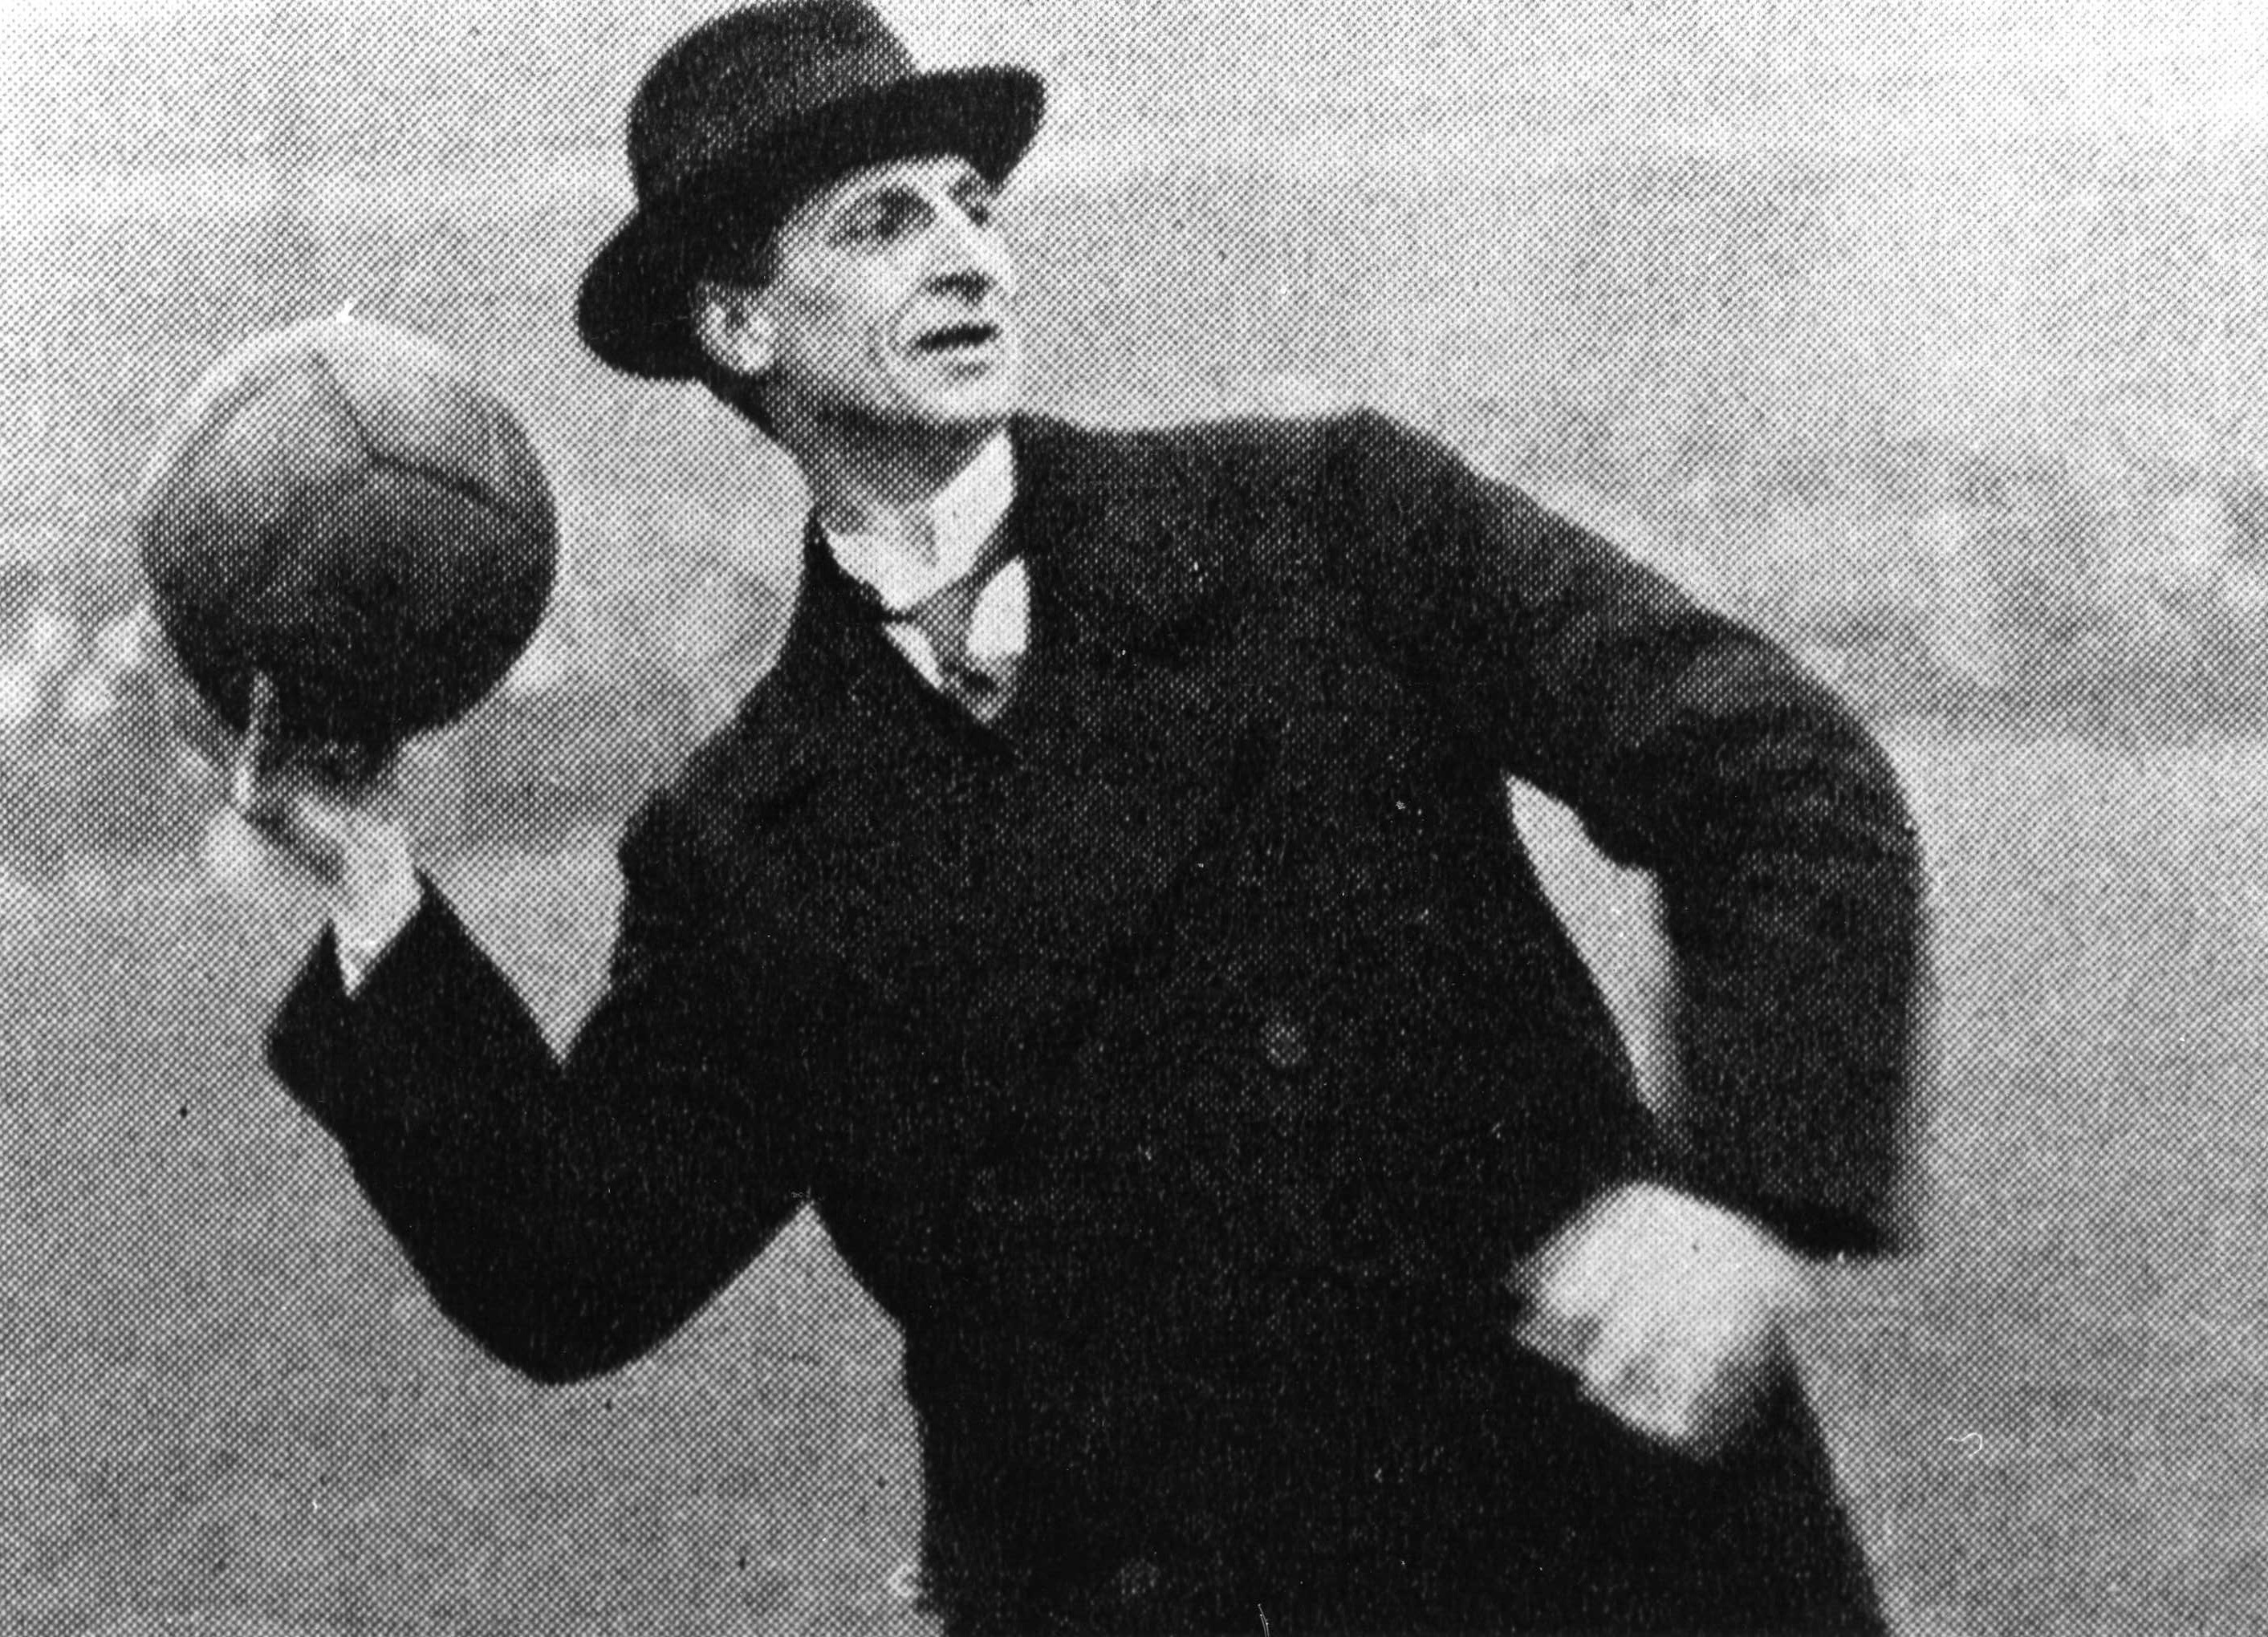 Eamon de Valera throwing in the ball at Croke Park, 1919